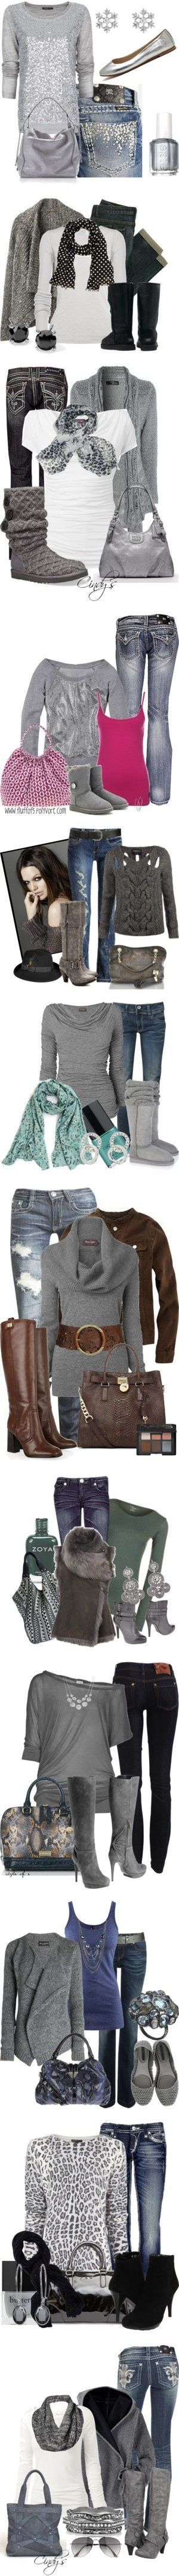 Gray ❤. Not crazy about the animal print shirt and cant do the belted sweater. Love the color accents in most of these.